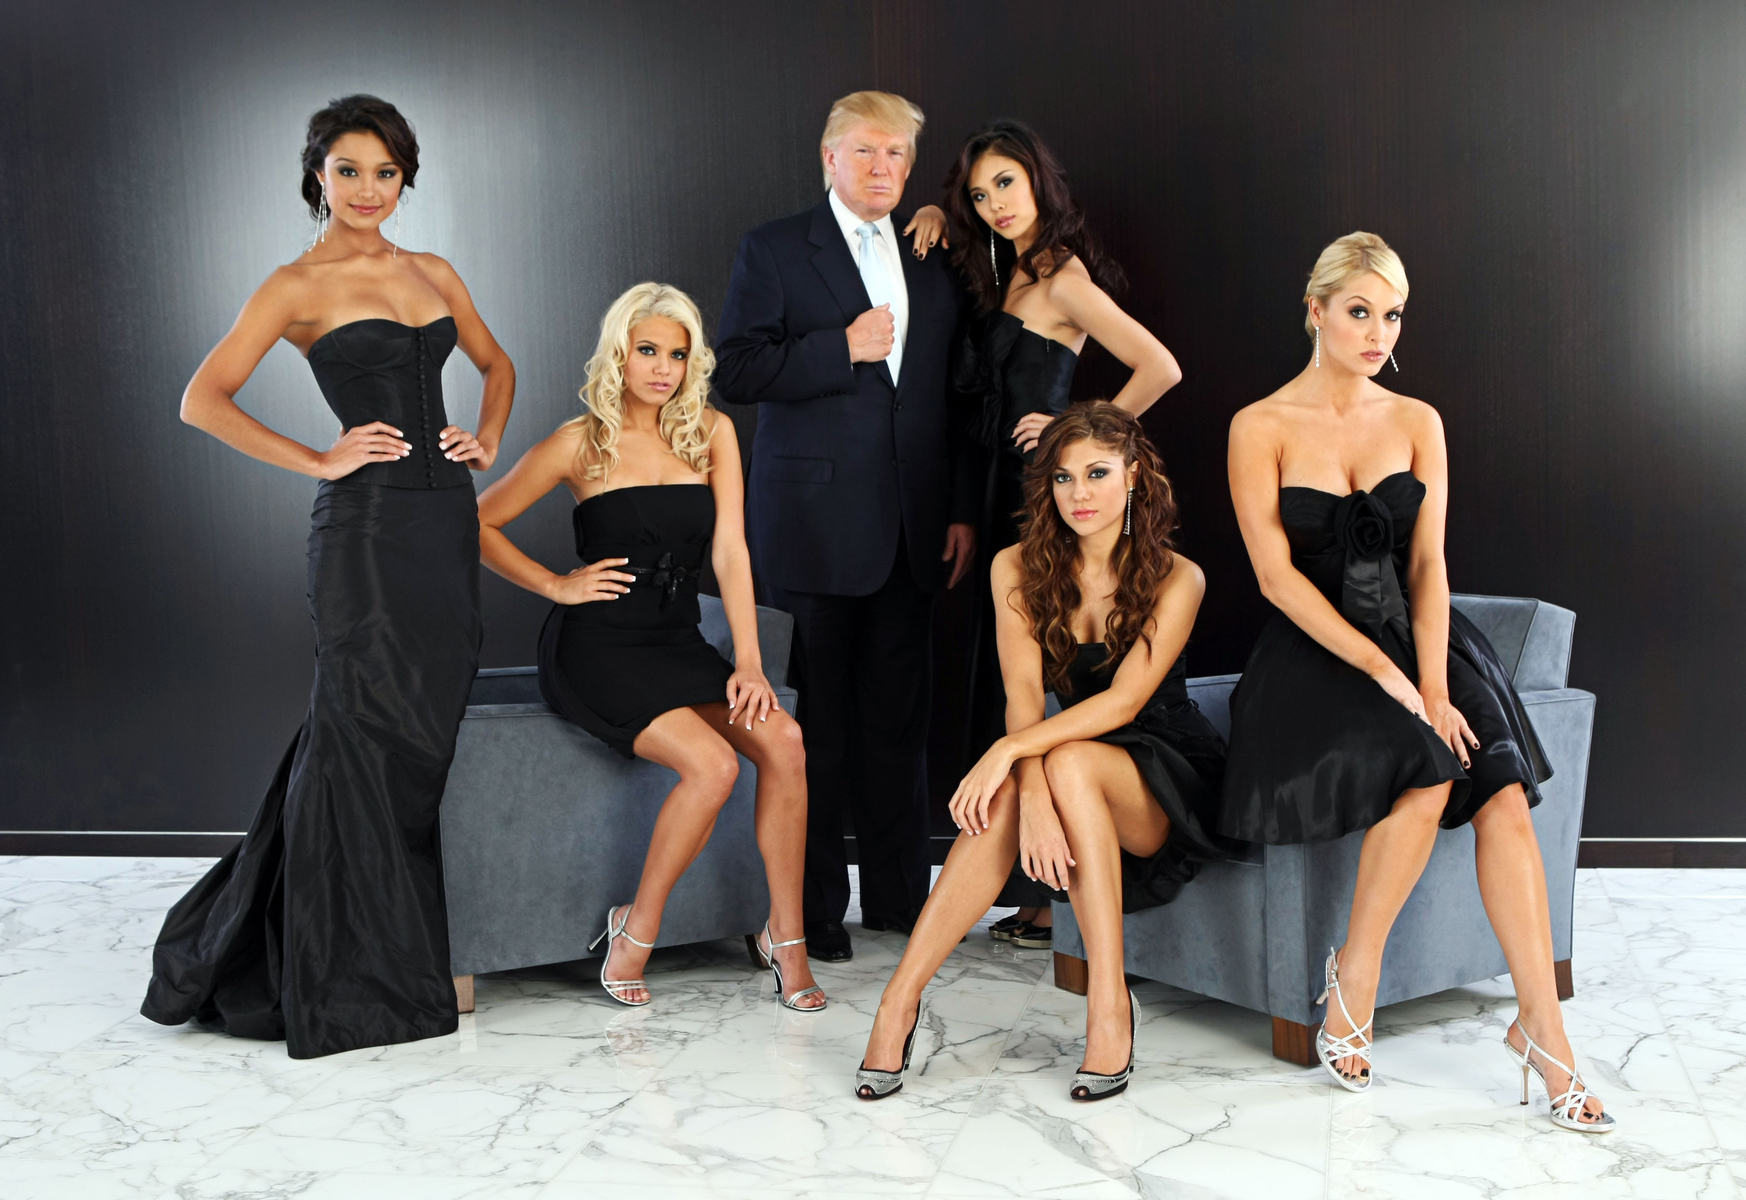 Donald Trump with Beauty Pageant Winners